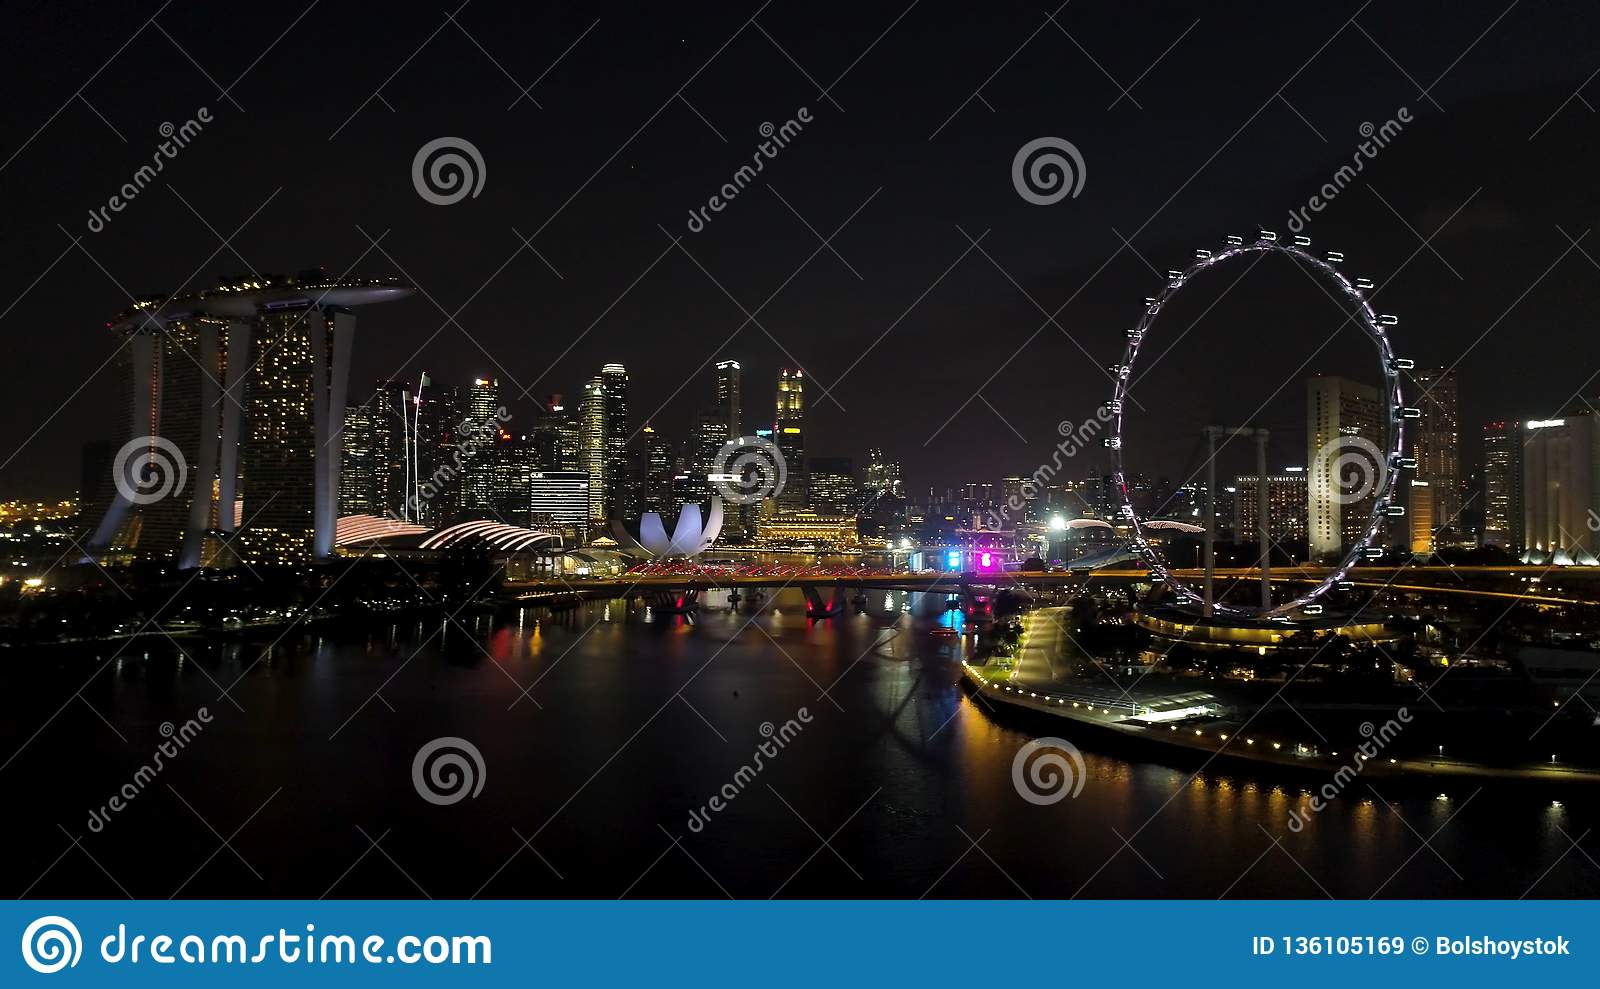 Singapore - 25 September 2018: Aerial view of big city with many lights, cloudy sky, and ferris wheel at night. Shot